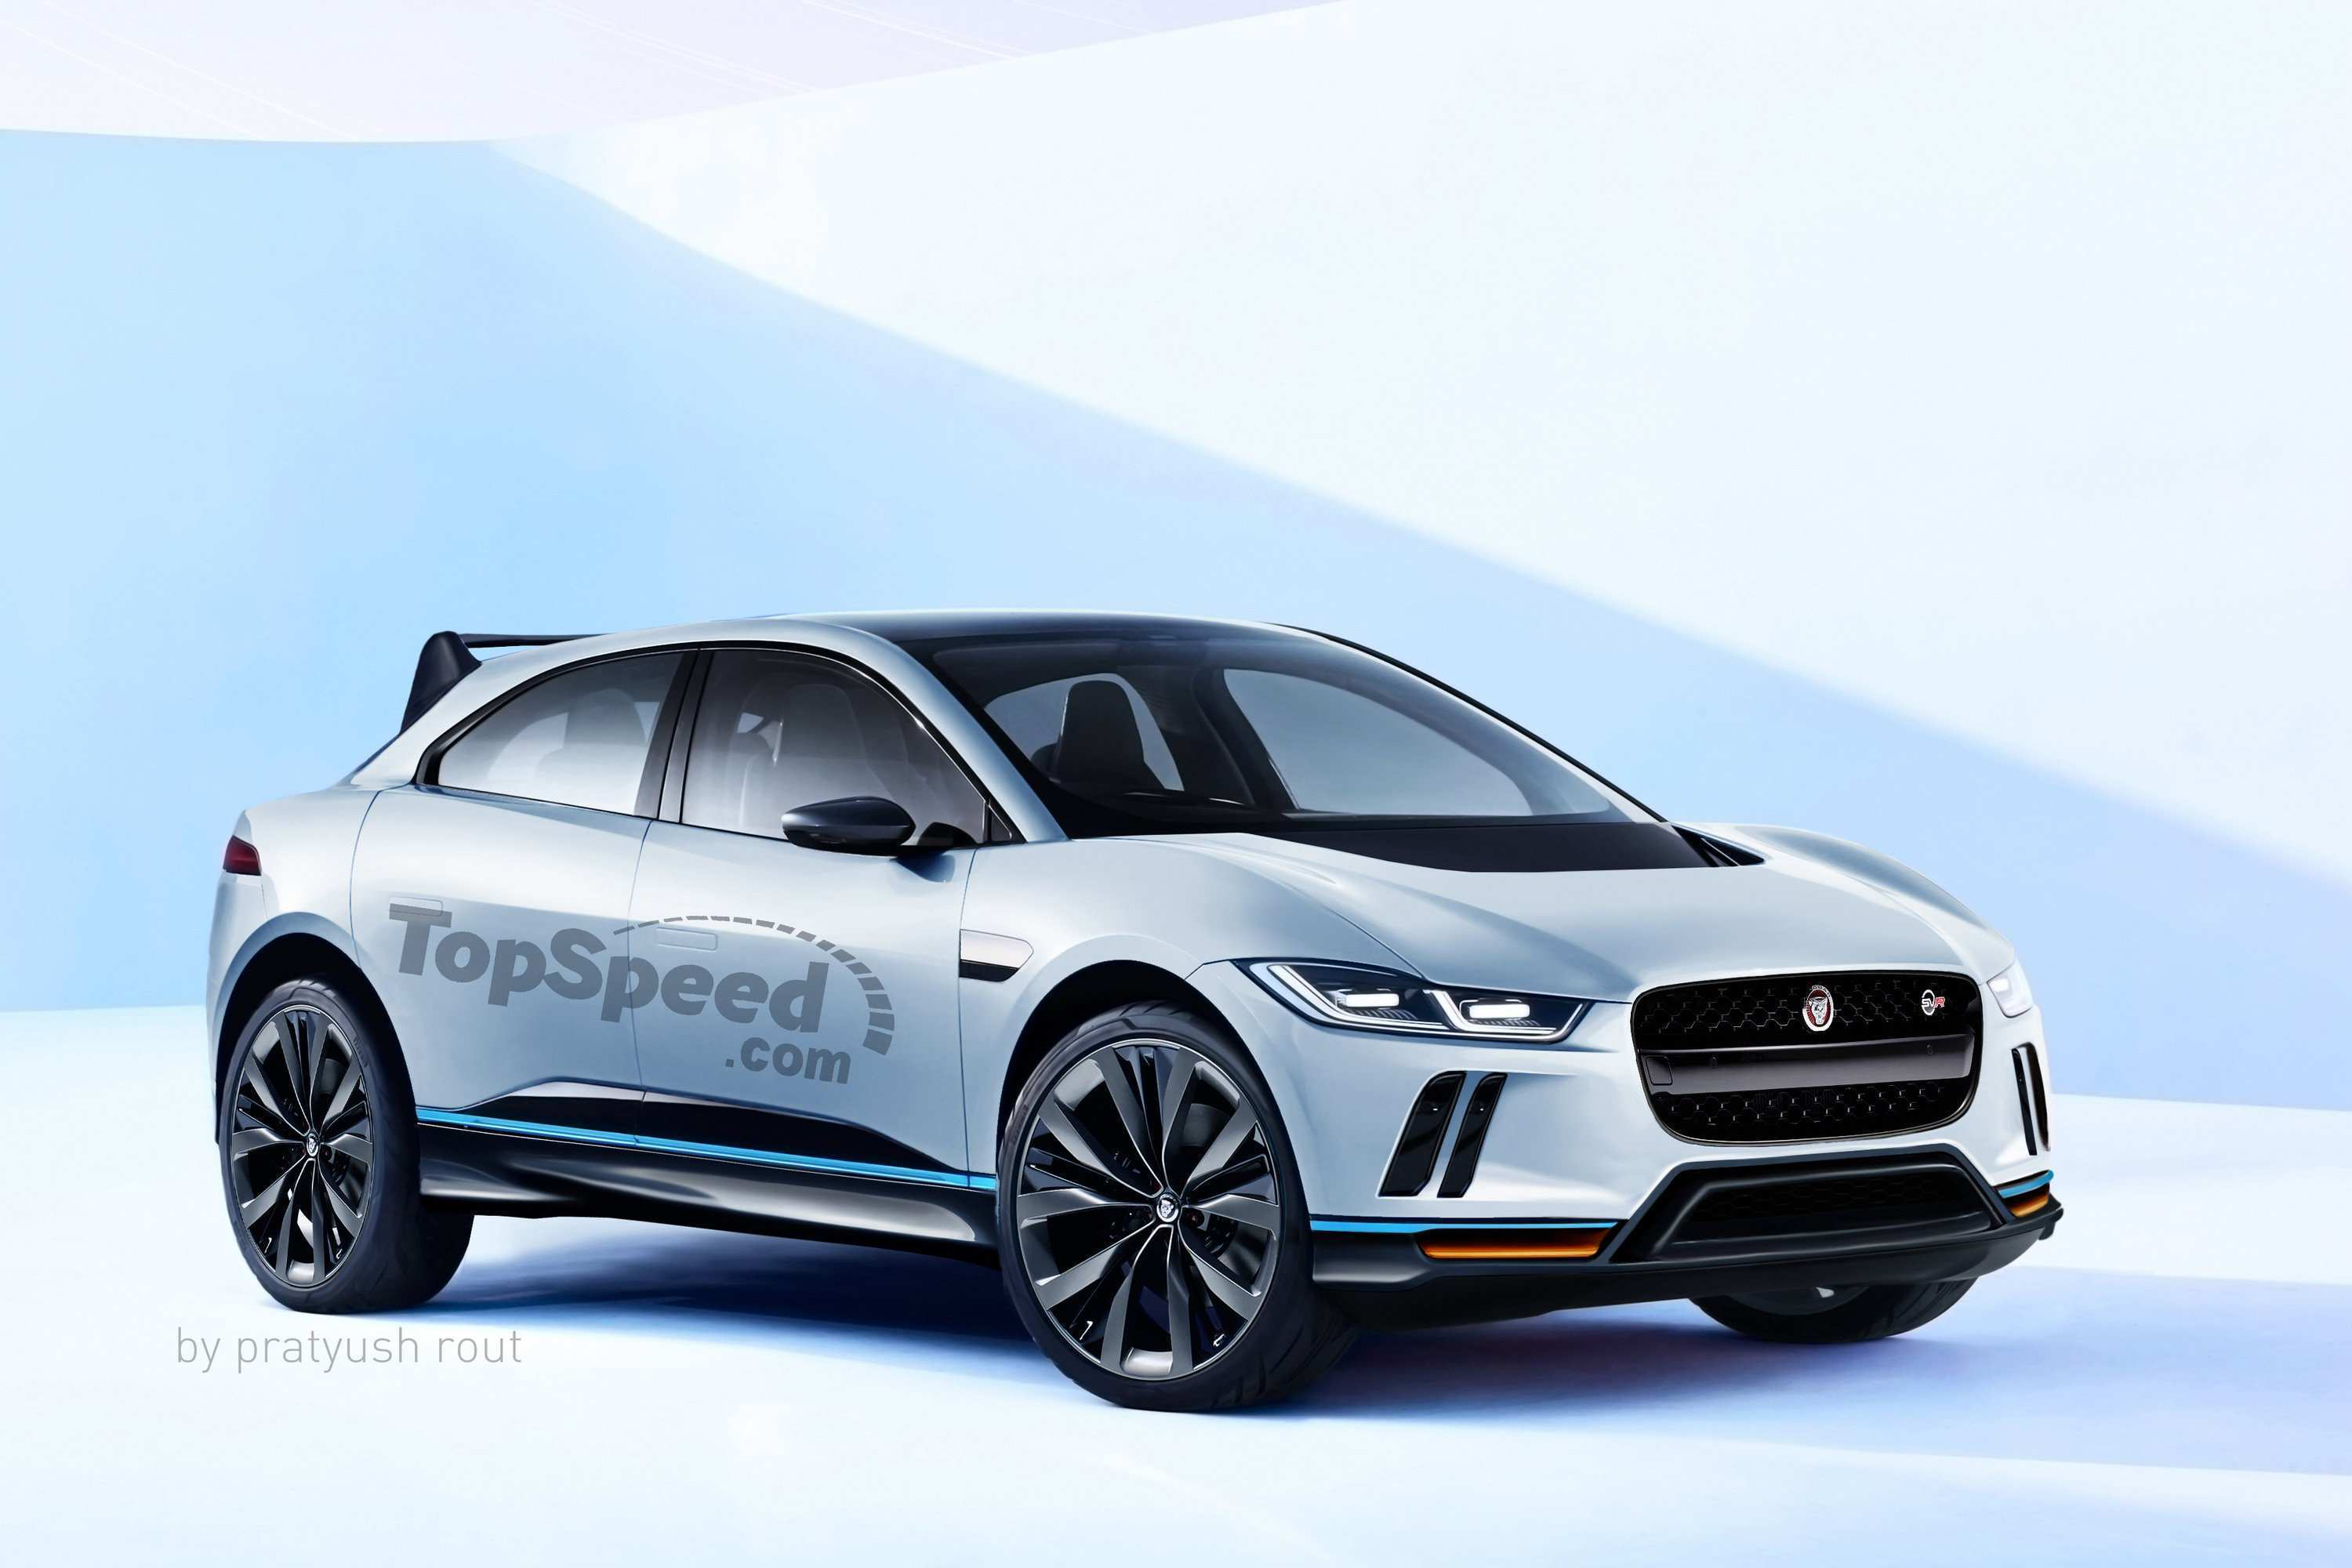 98 All New 2020 Jaguar F Pace Svr Exterior Release Date for 2020 Jaguar F Pace Svr Exterior